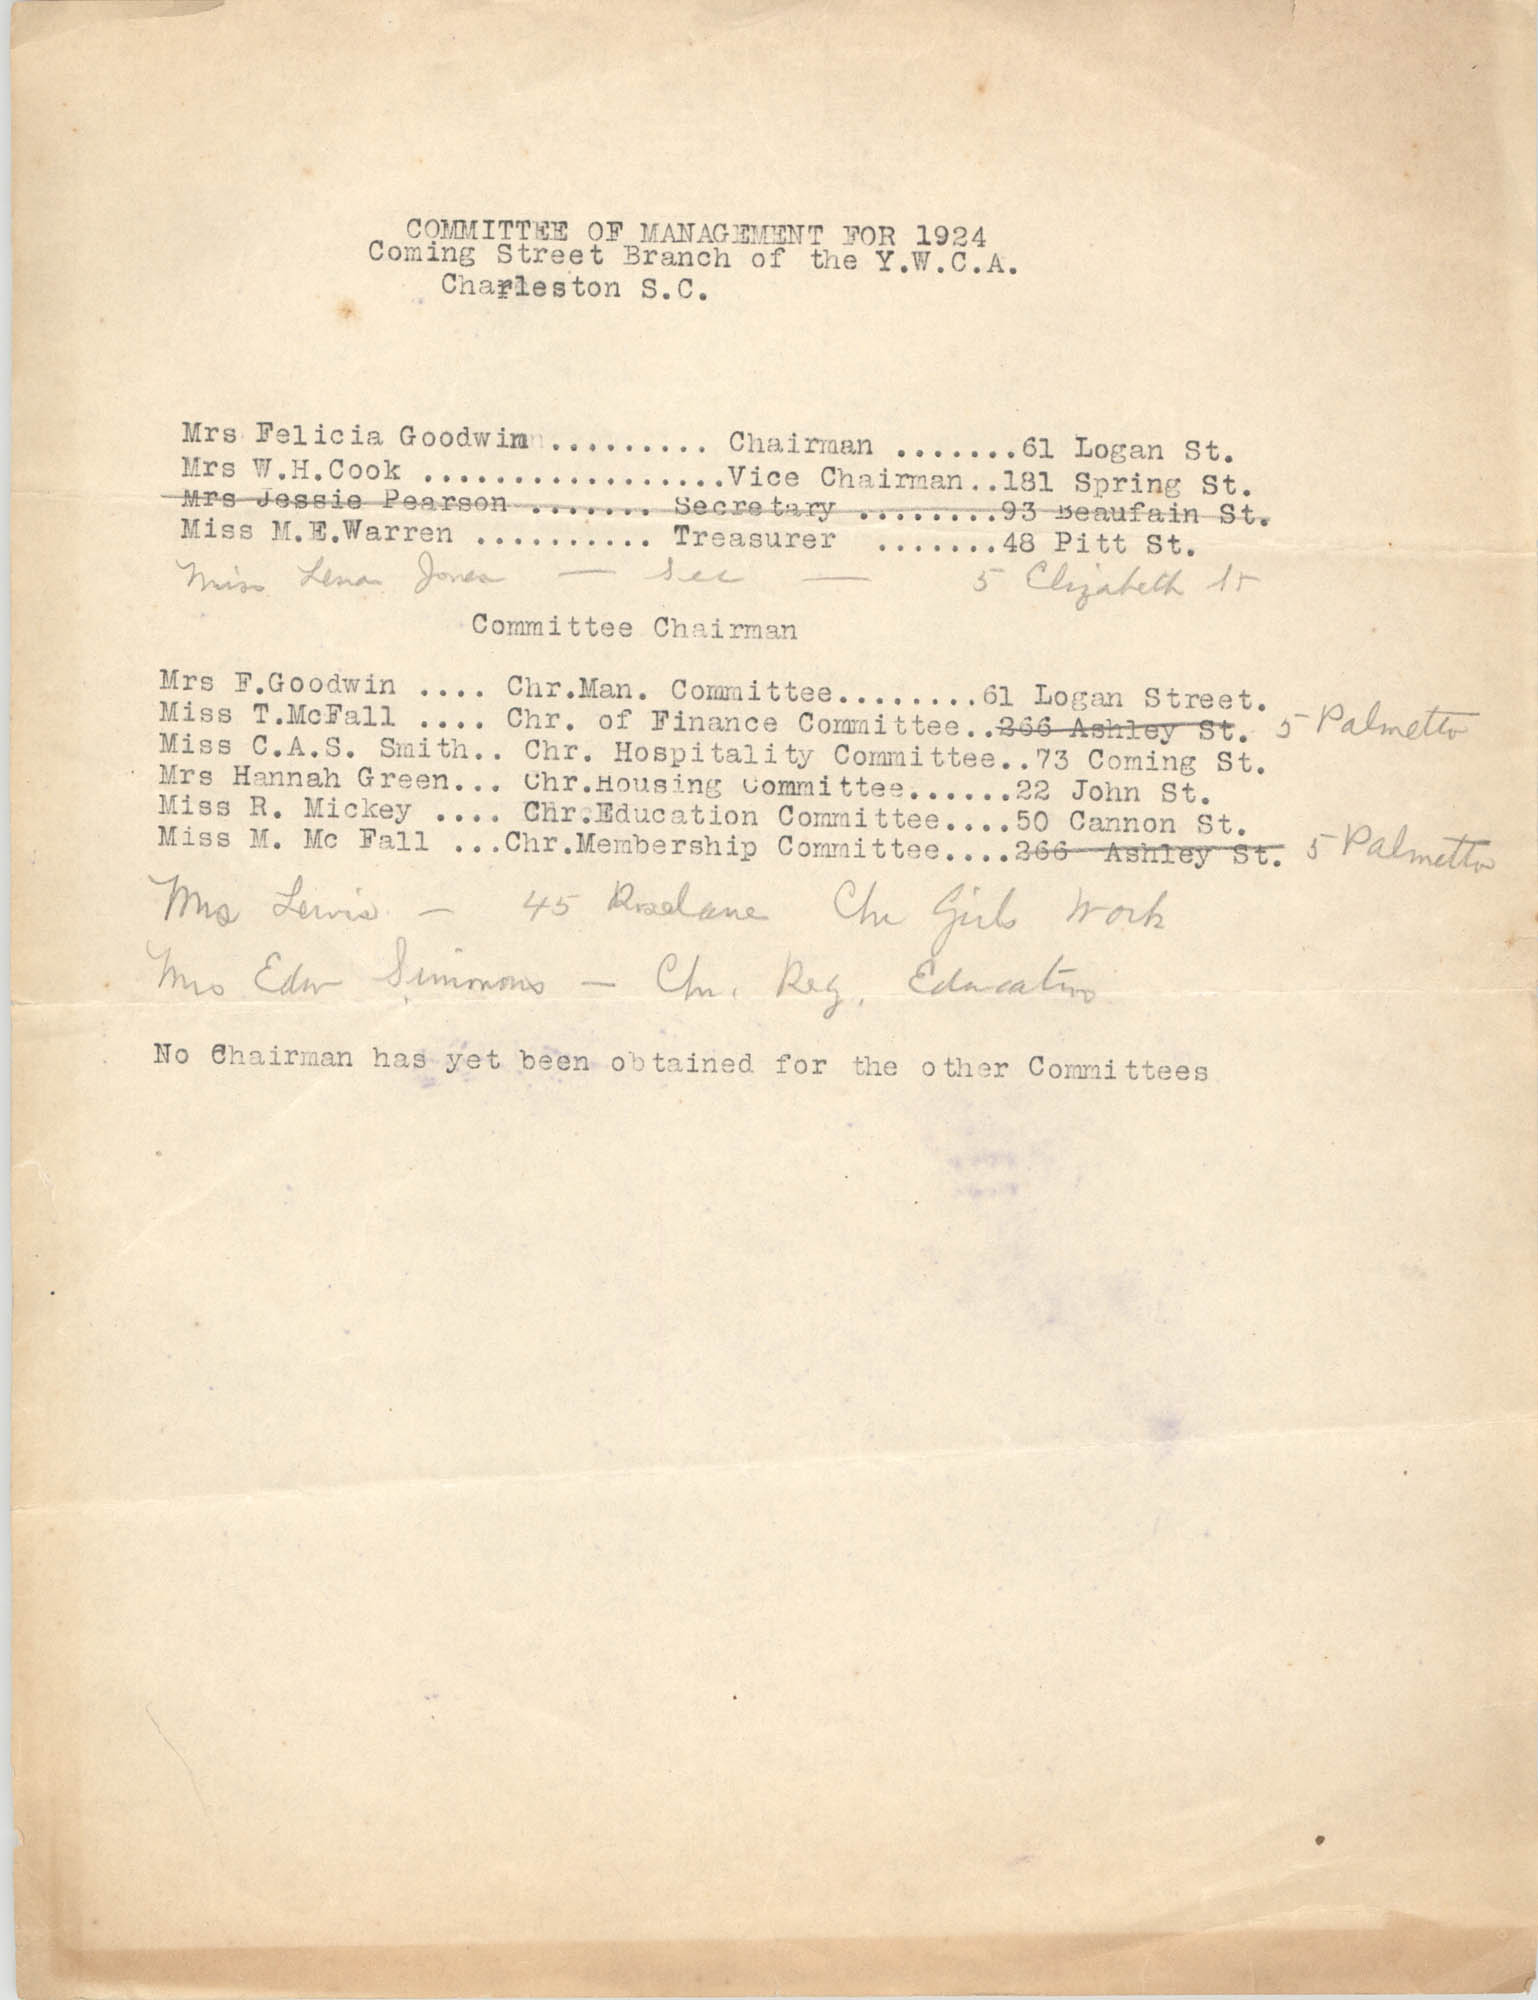 Committee of Management for 1924, Coming Street Y.W.C.A.